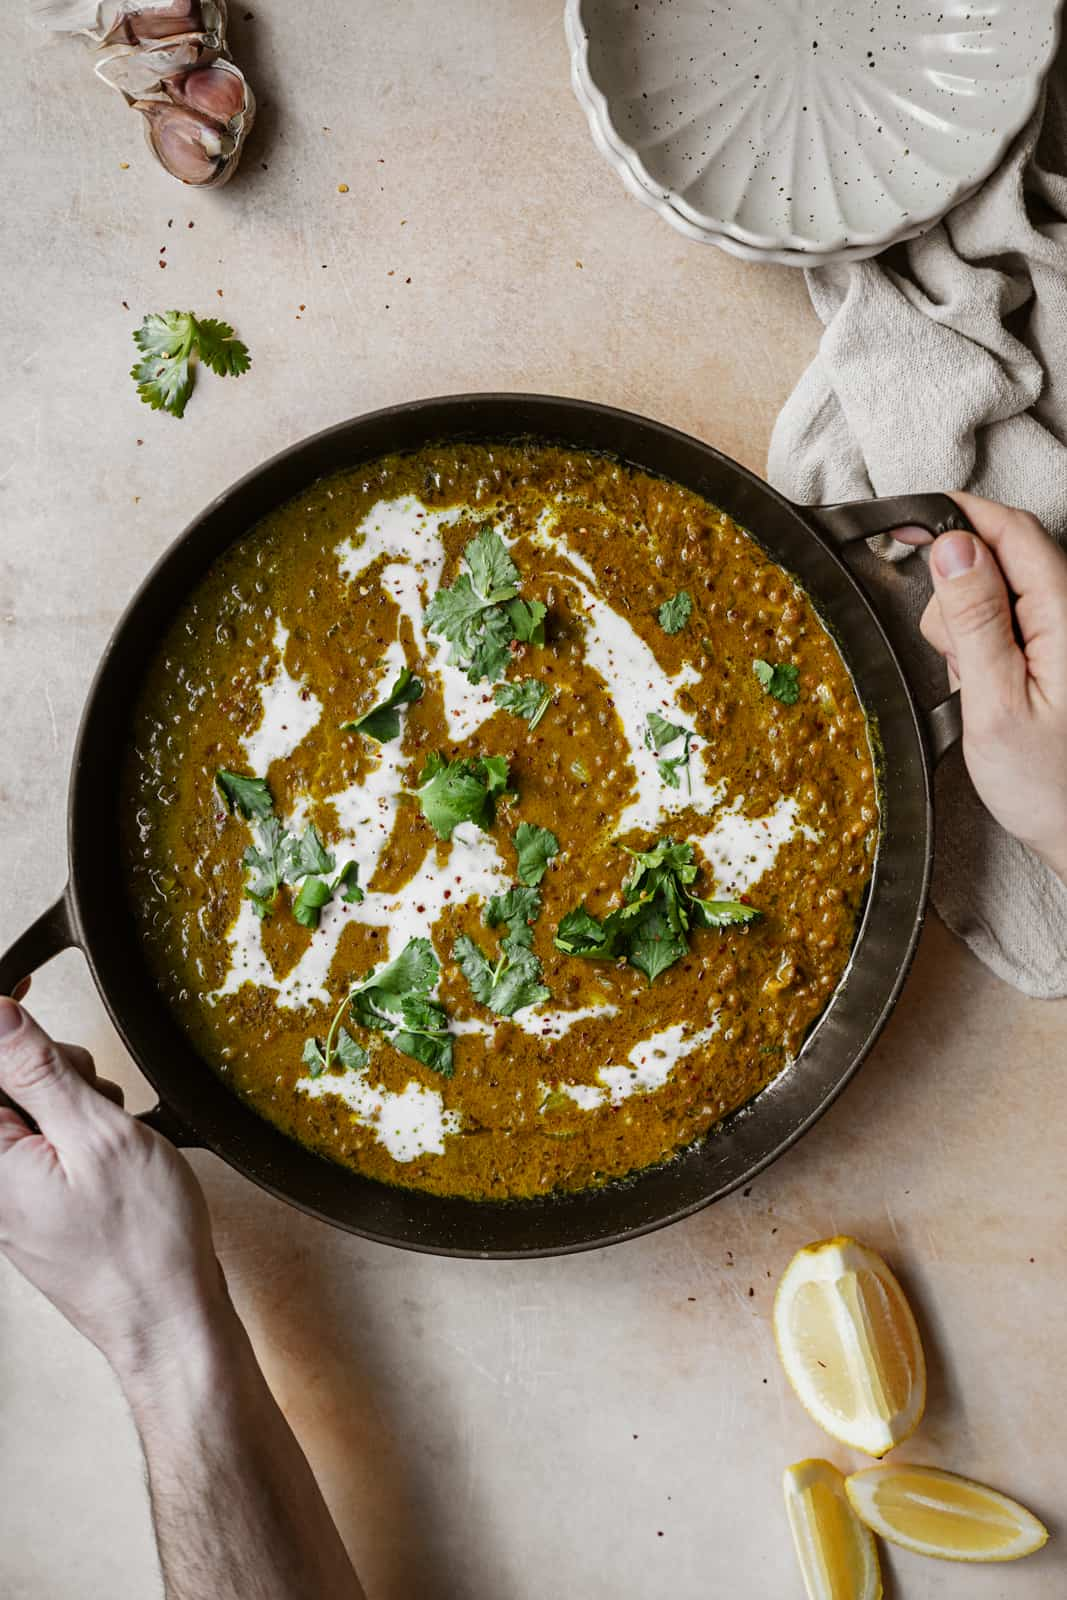 Green Lentil Curry in a serving dish with two hands holding it.